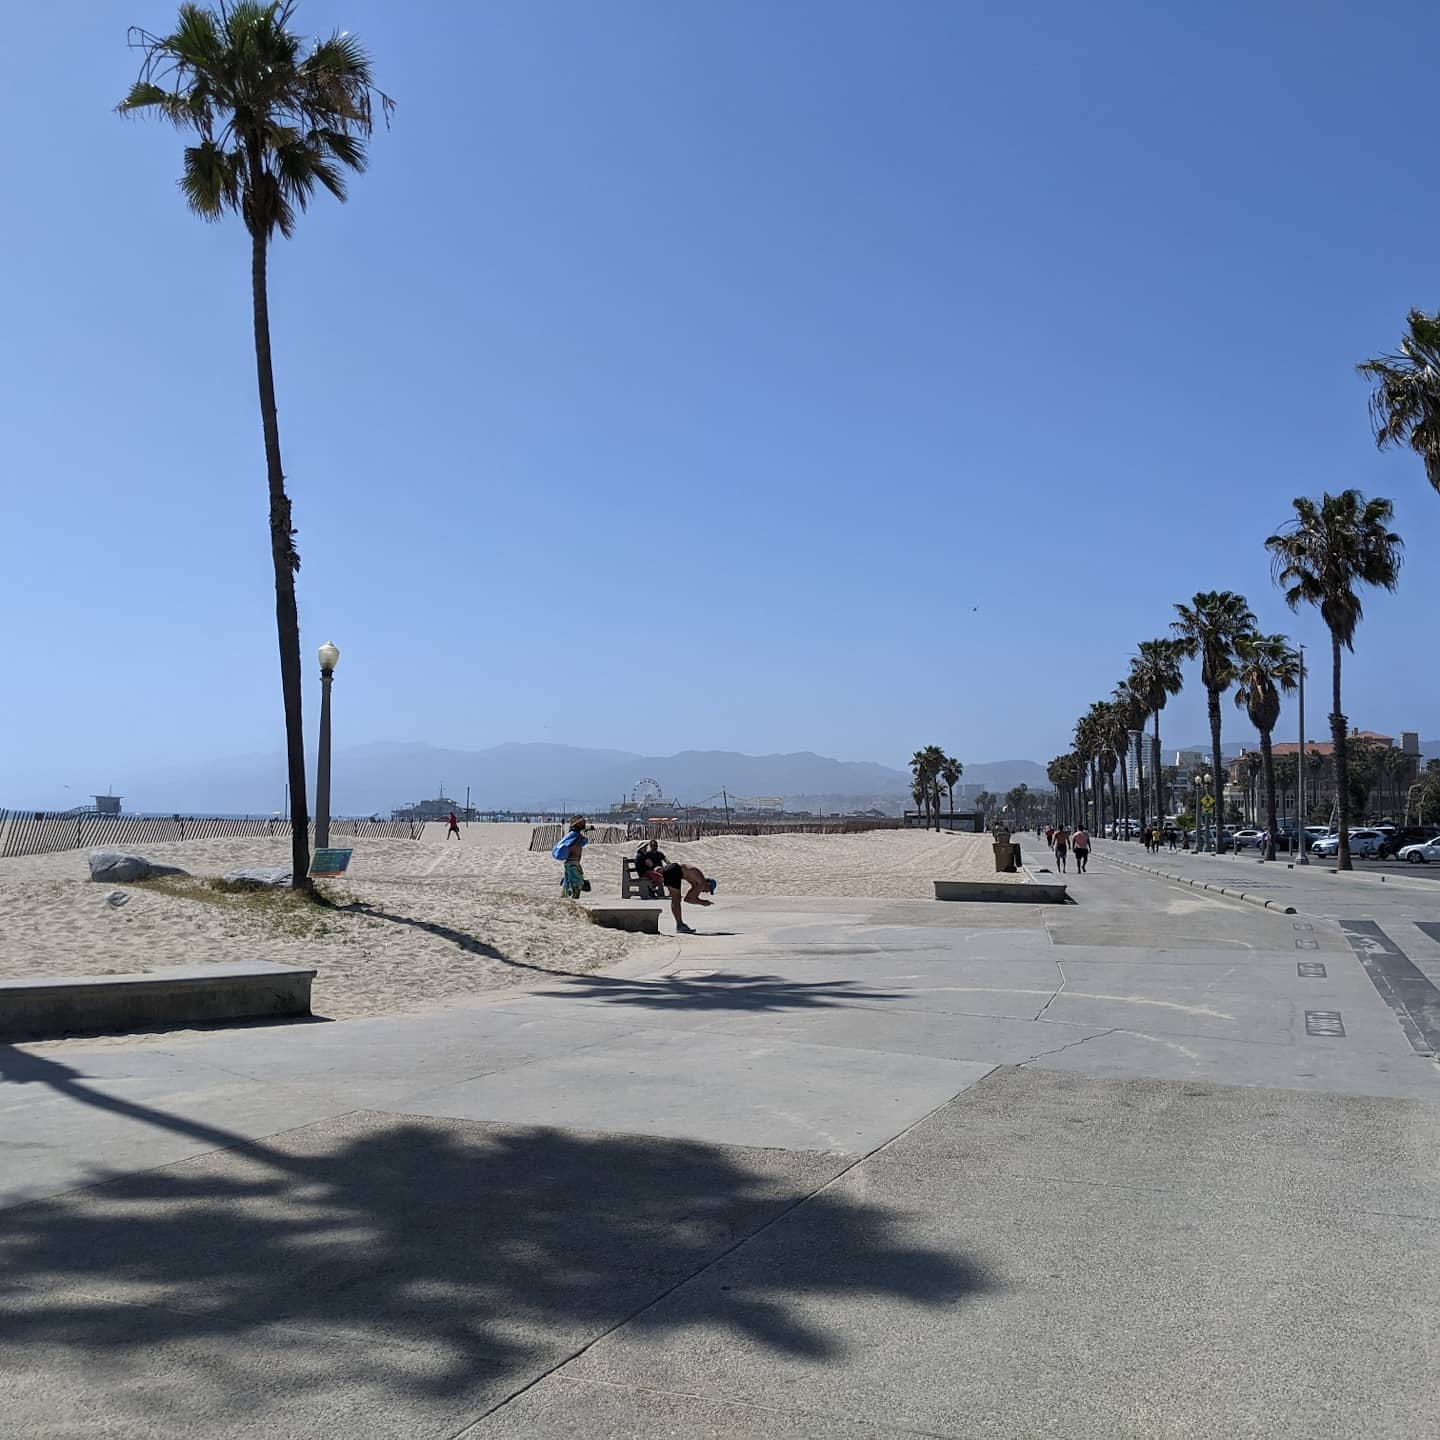 A nice walk from Venice Beach to Santa Monica Pier and back. There are perks to consulting